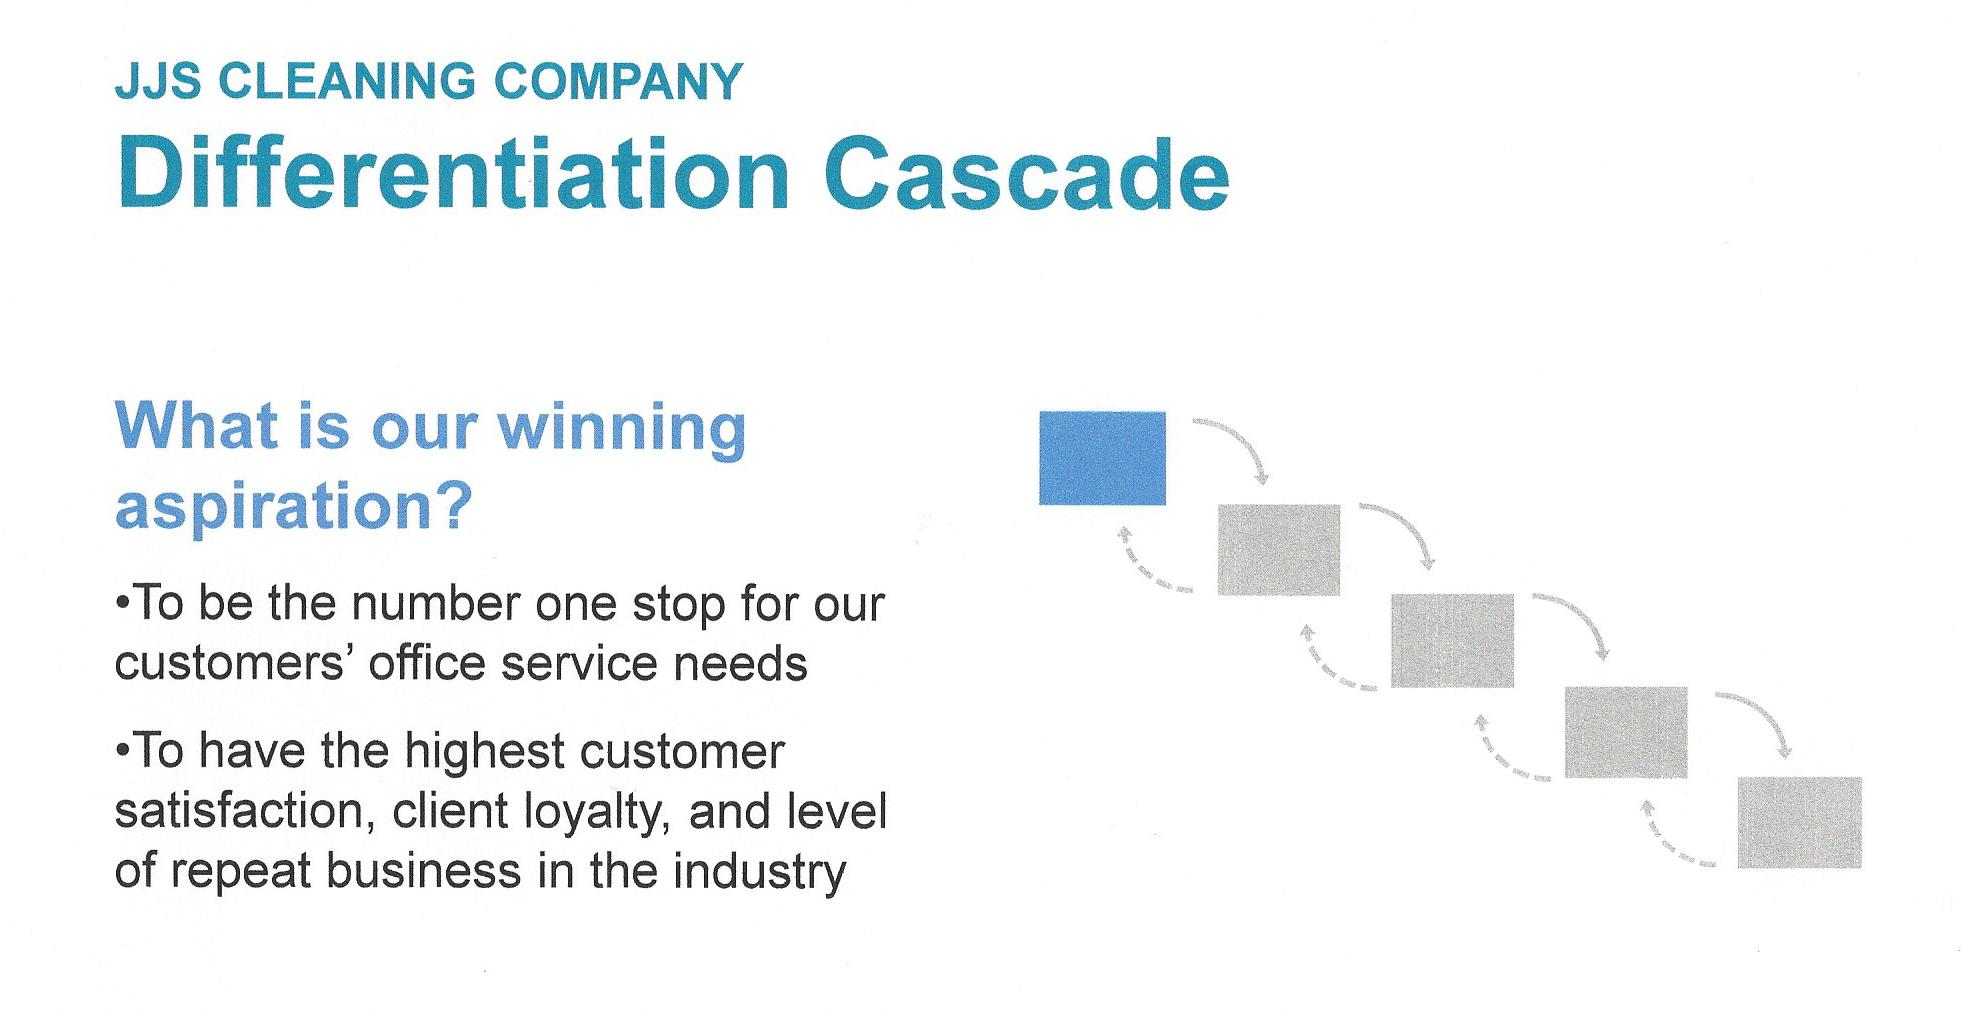 Play to Win - Differentiation Cascade - Winning Aspiration